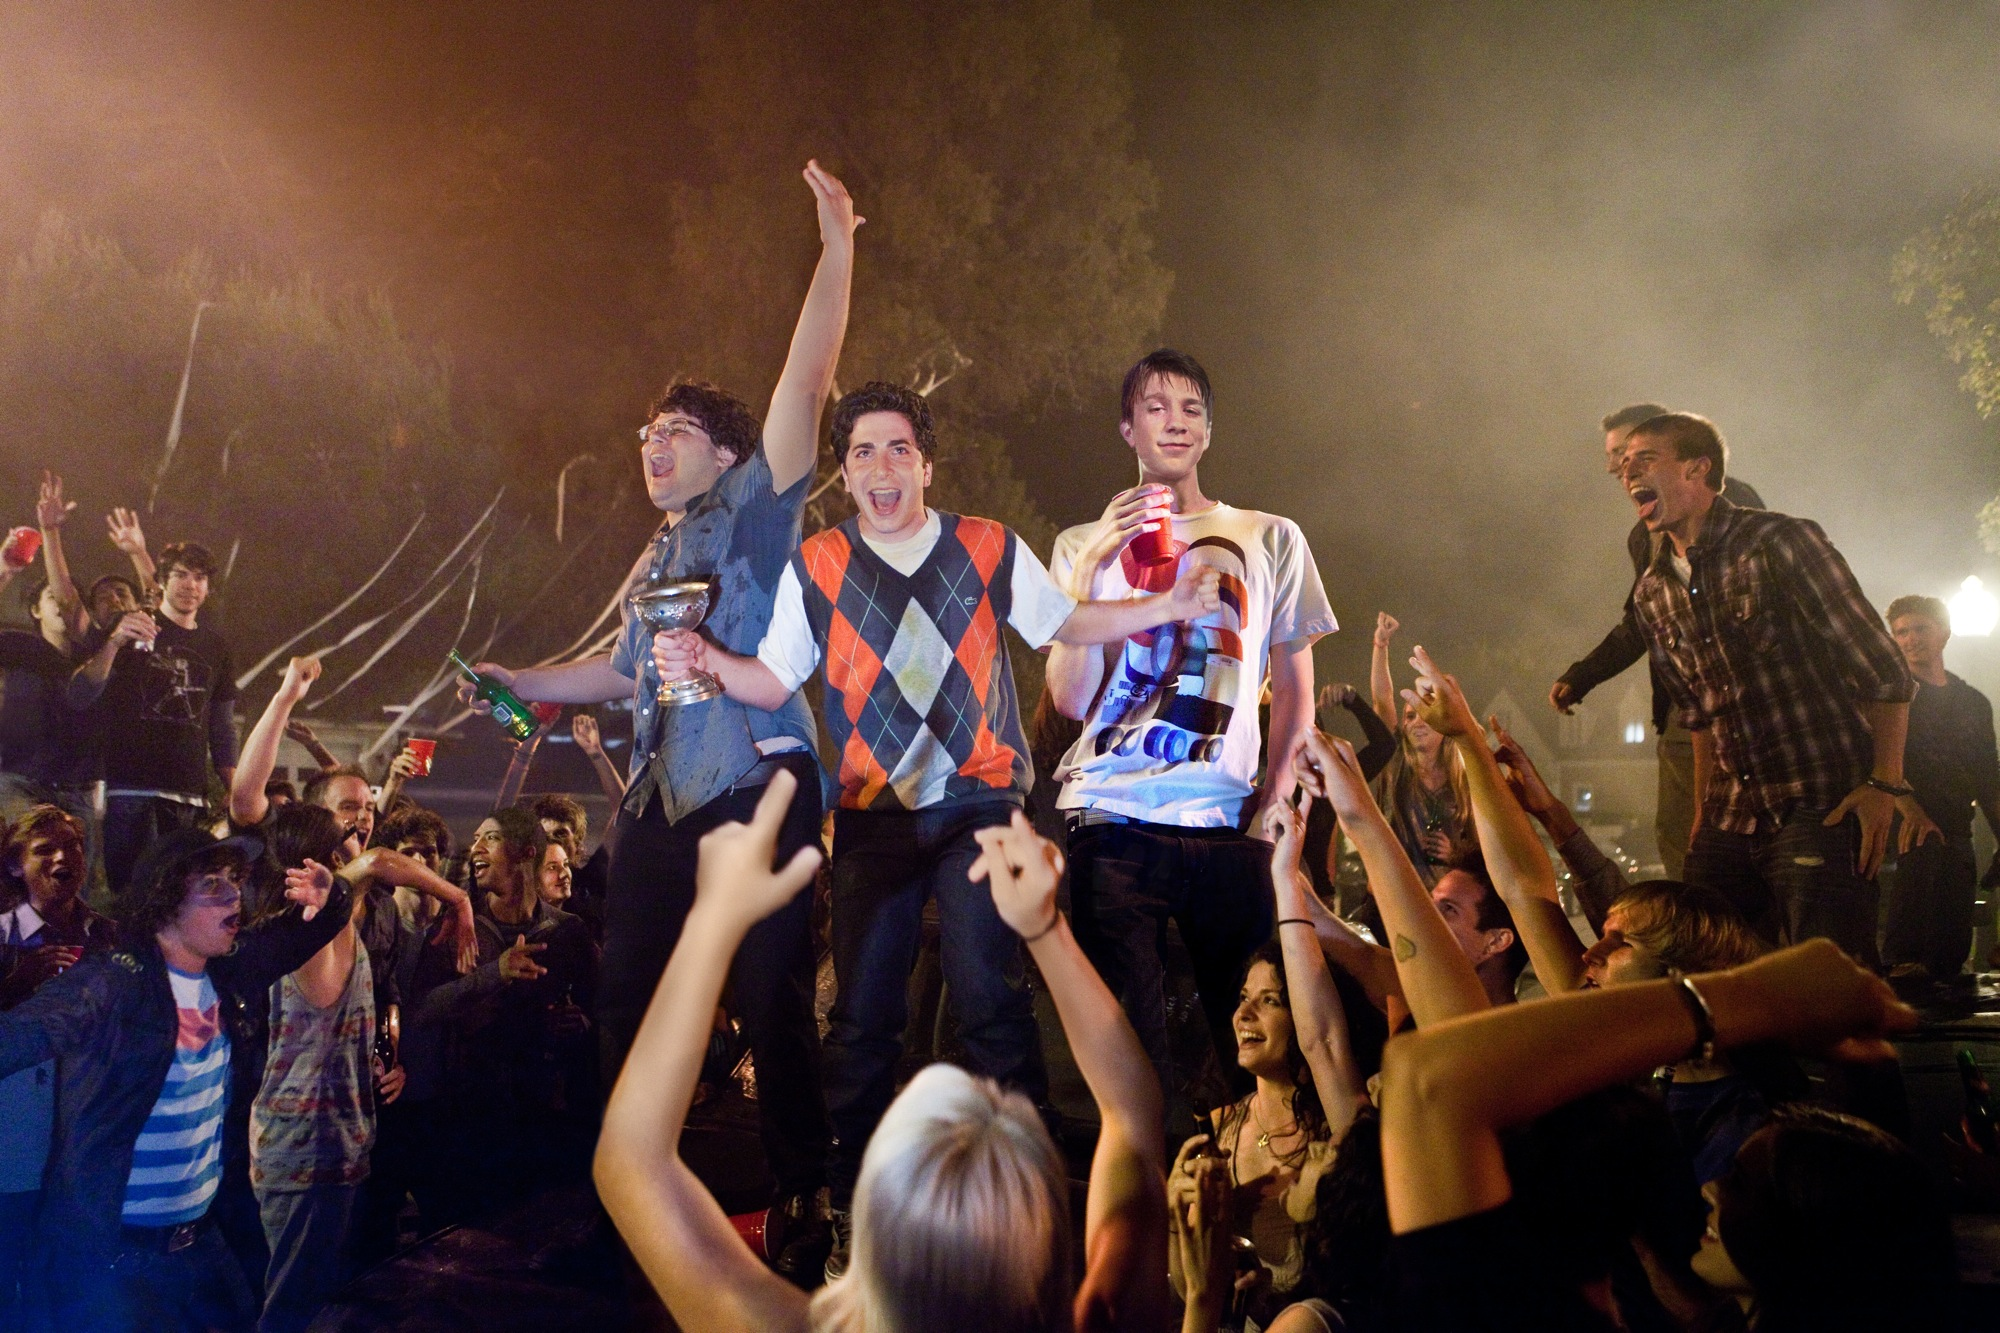 New Image Of The Party Movie, PROJECT X, Produced By THE HANGOVER